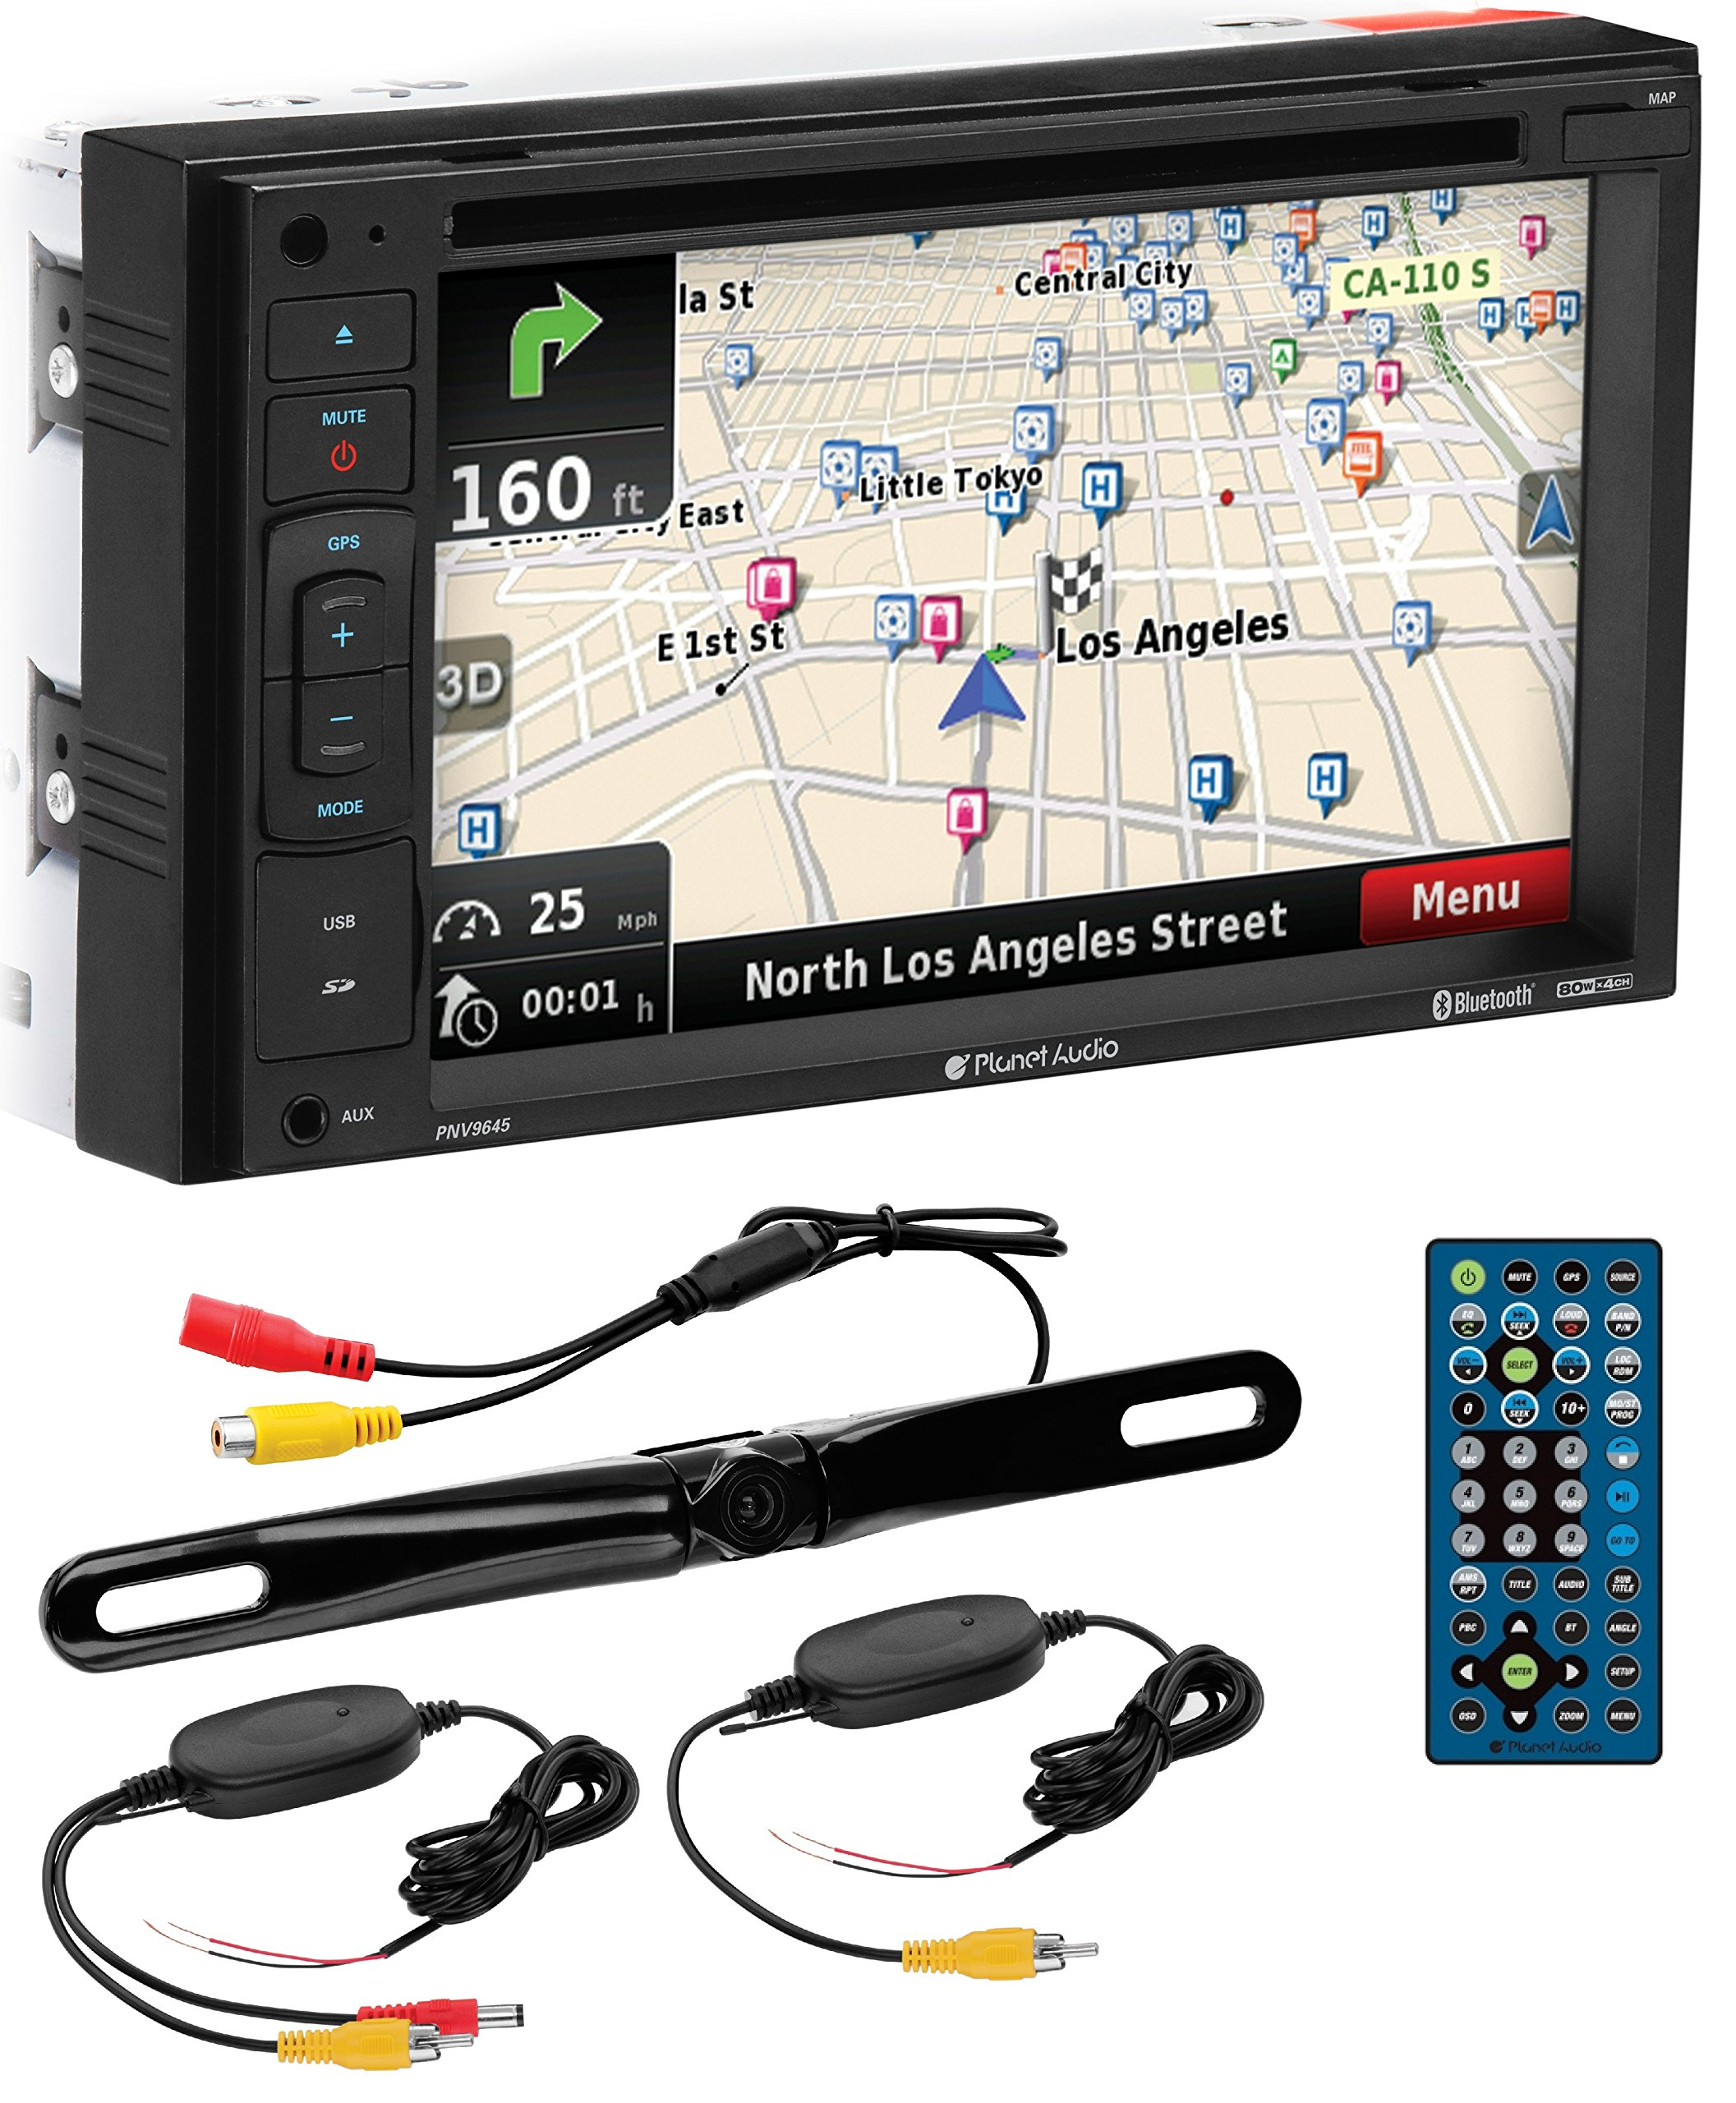 PLANET AUDIO PNV9645WRC Navigation, Bluetooth, Double Din, 6.2'' Touch Screen, DVD/CD/MP3 AM/FM Receiver Wireless Remote, Wireless License Plate Backup Camera Included